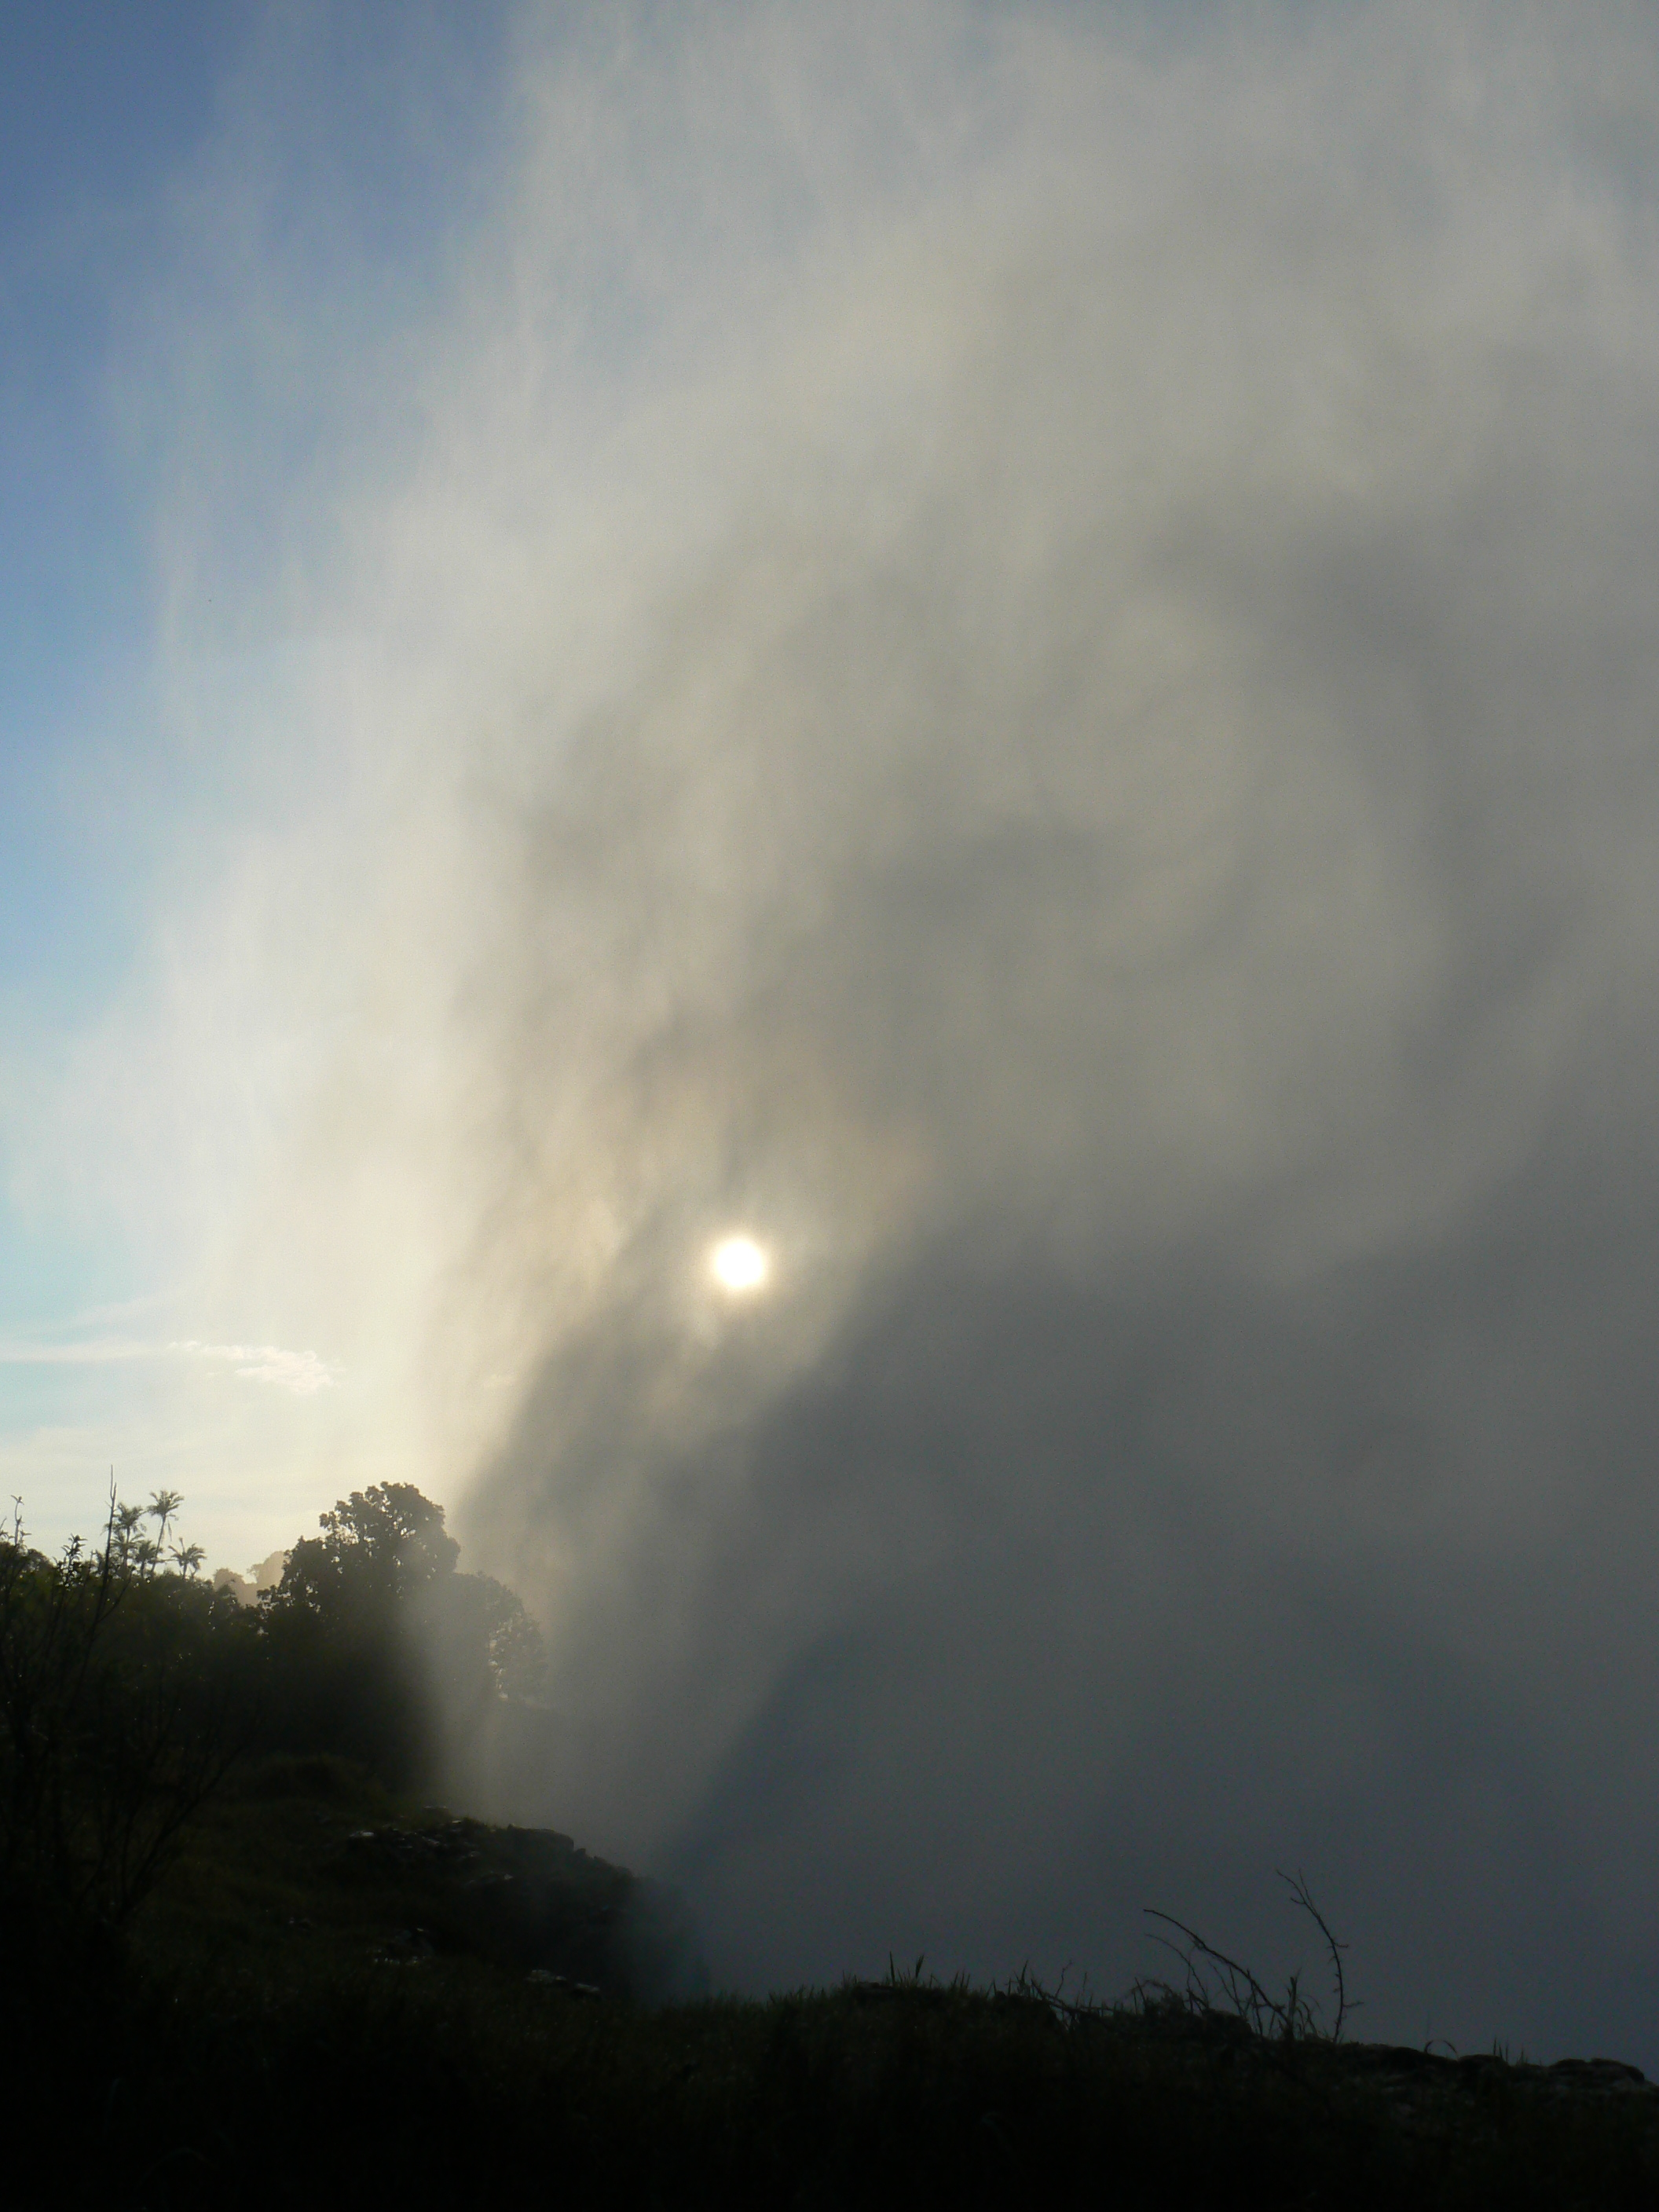 Spray from Victoria Falls billows over 1,000 ft into the air - photo by E. Jurus